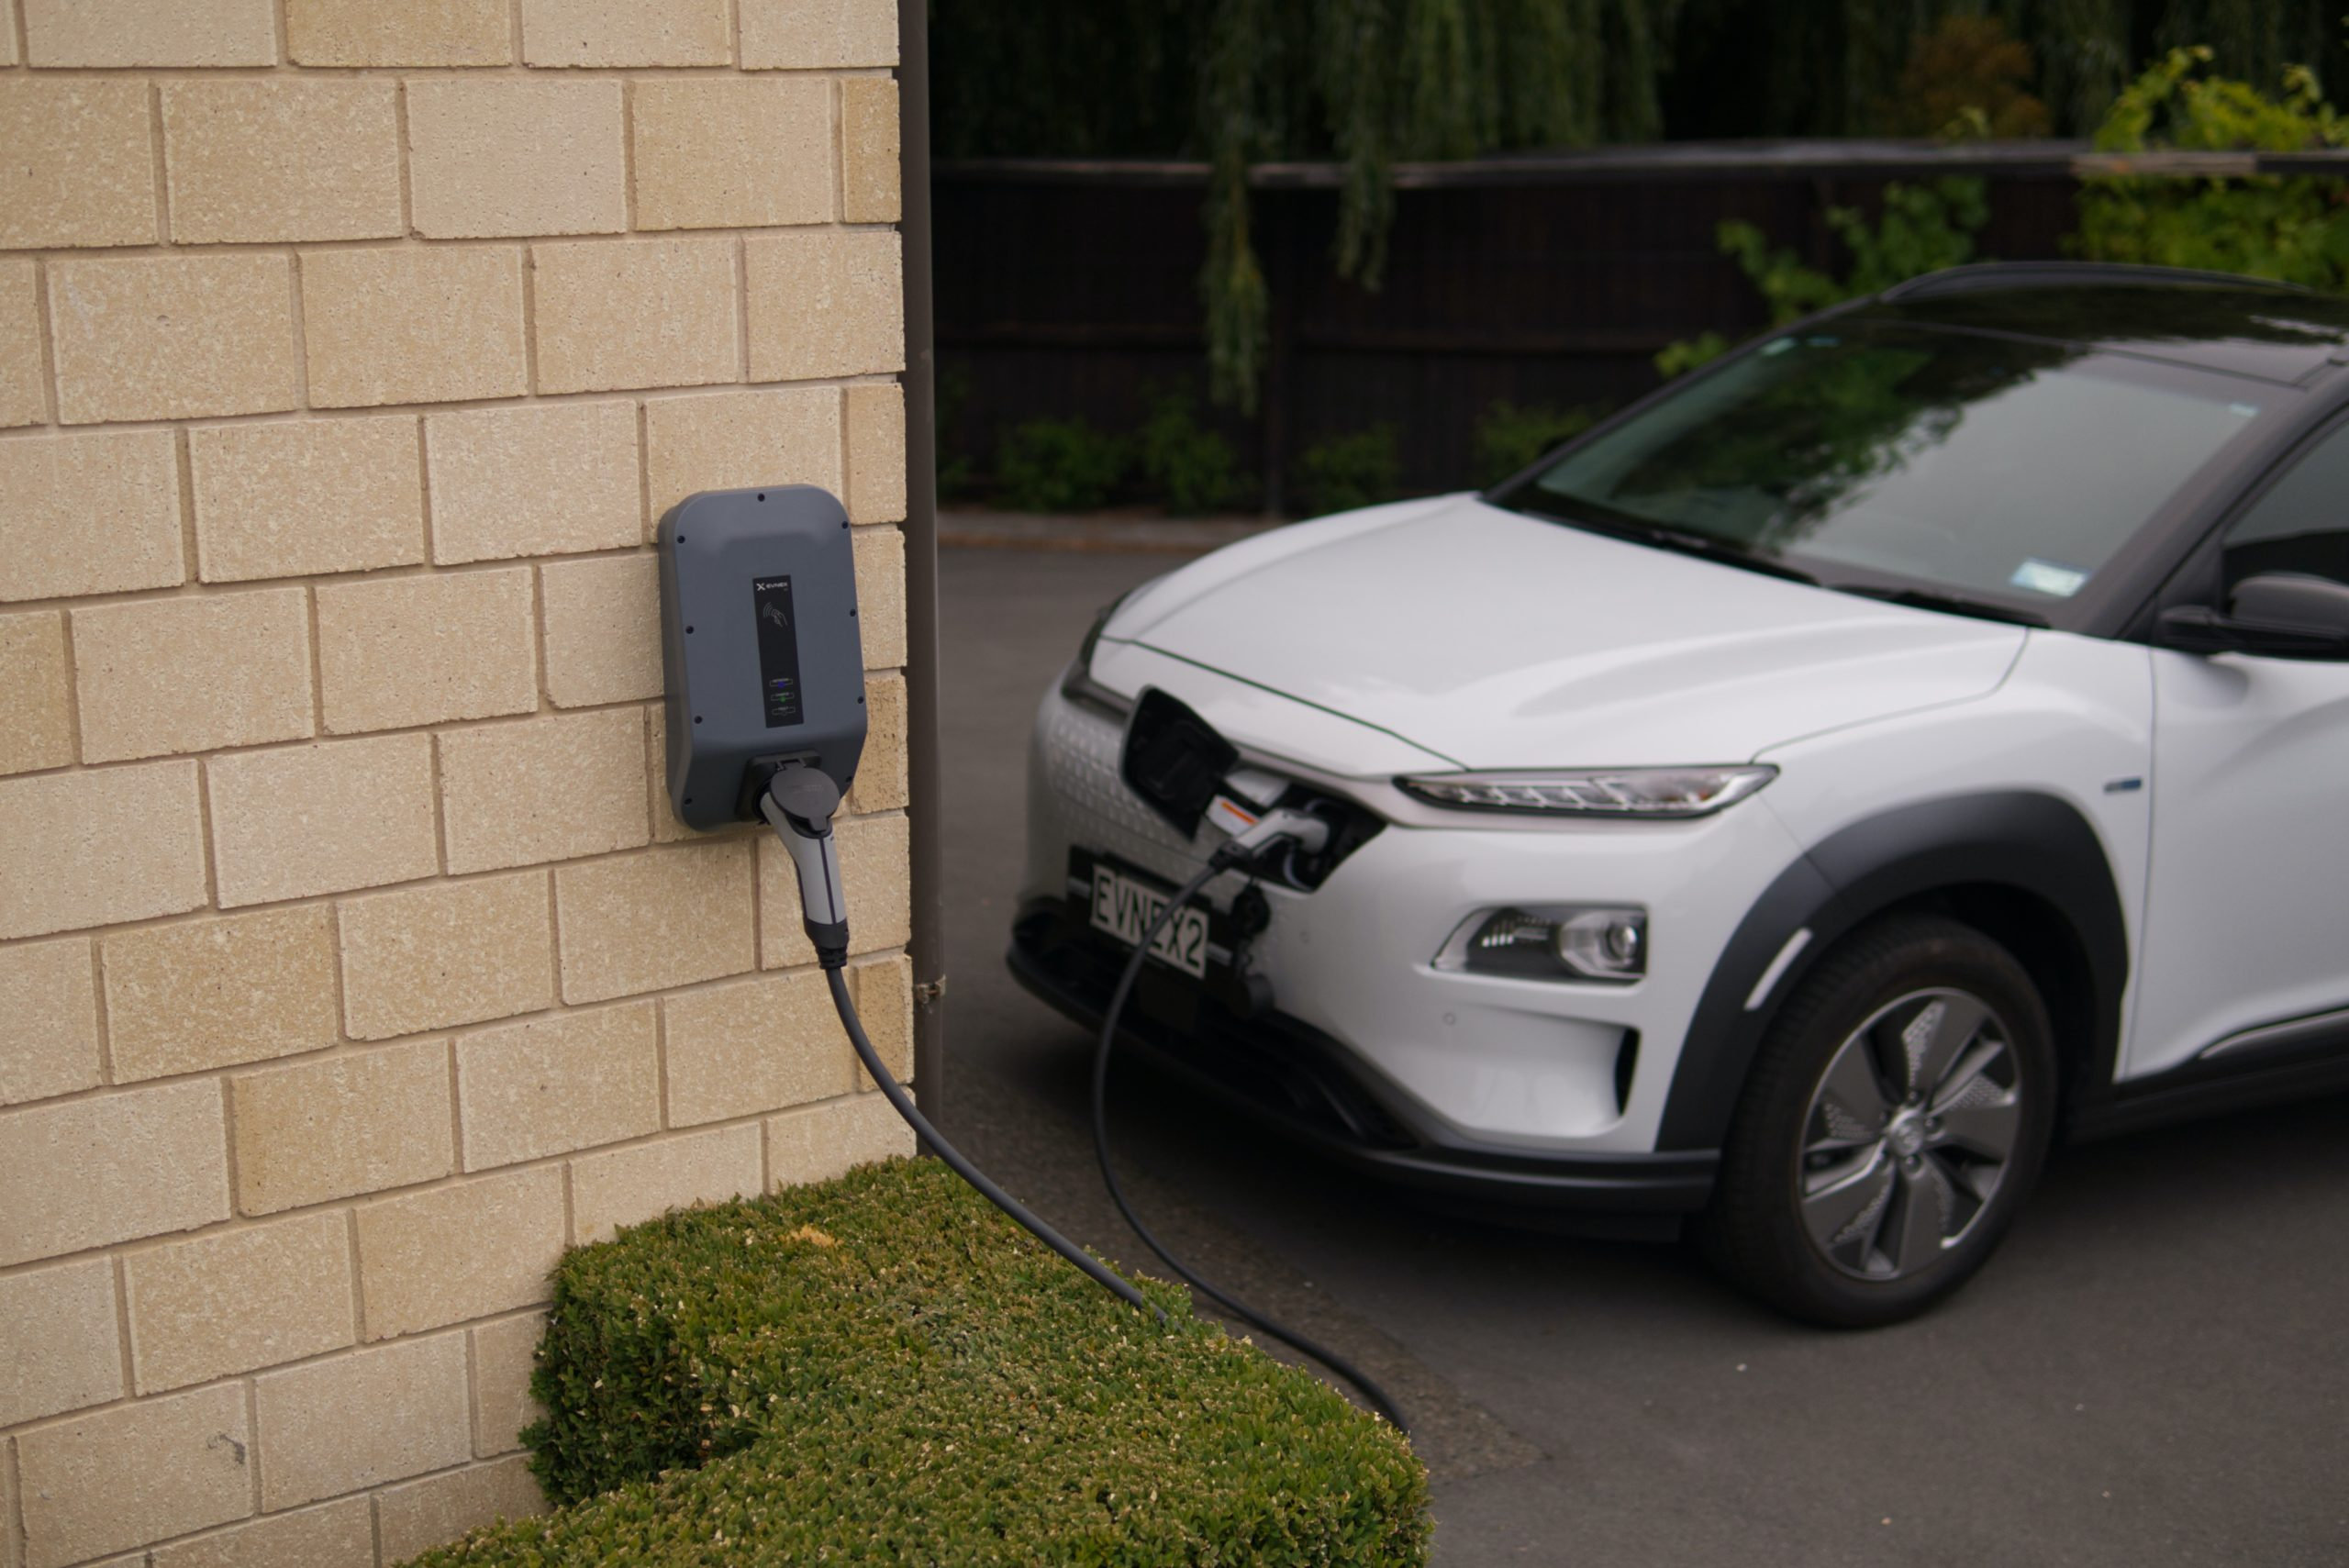 A EV car charging from a home wall system